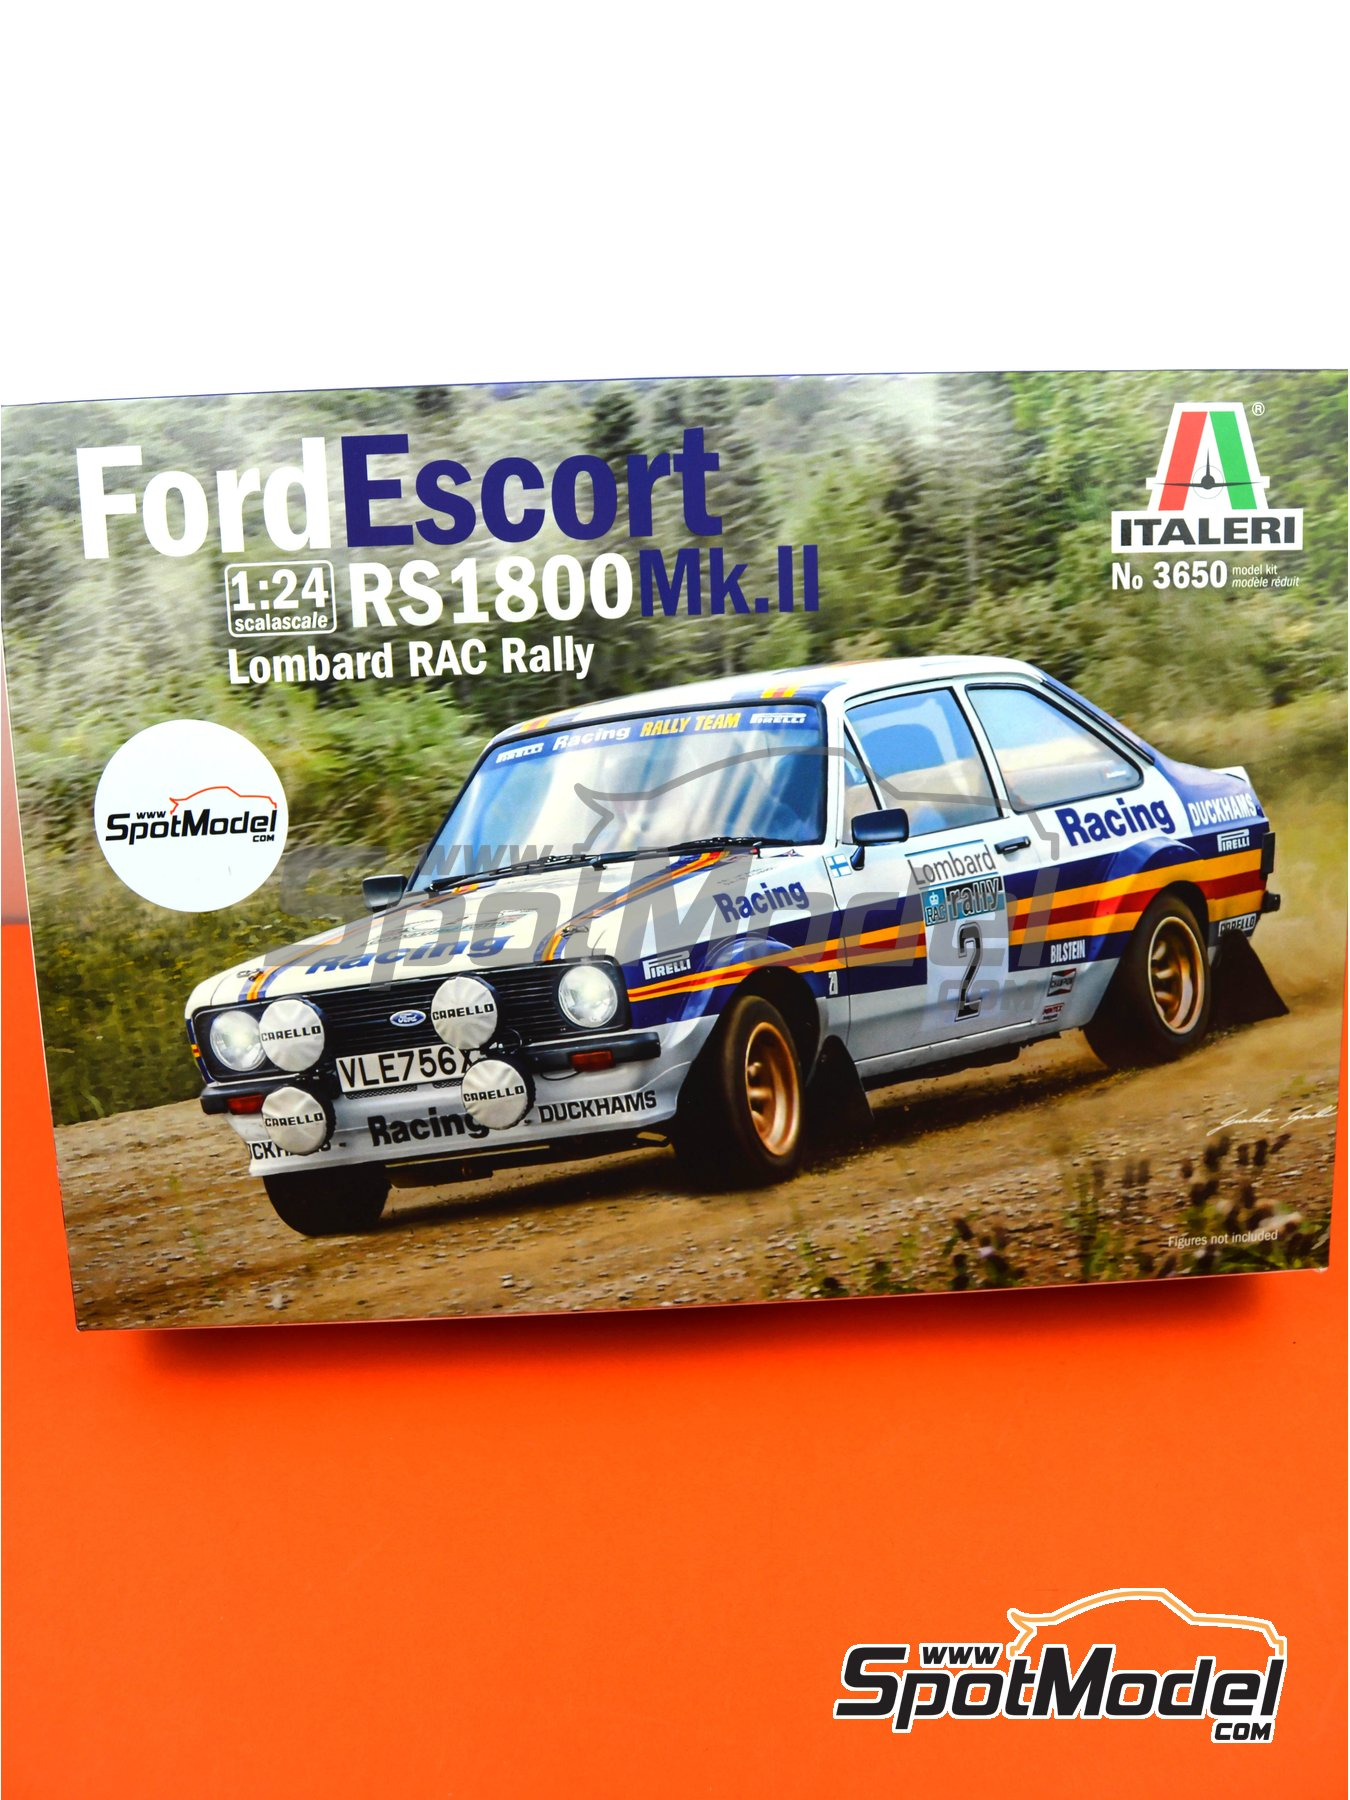 Ford Escort Mk. II RS1800 Rothmans - Lombard RAC Rally 1981 | Model car kit in 1/24 scale manufactured by Italeri (ref.3650) image